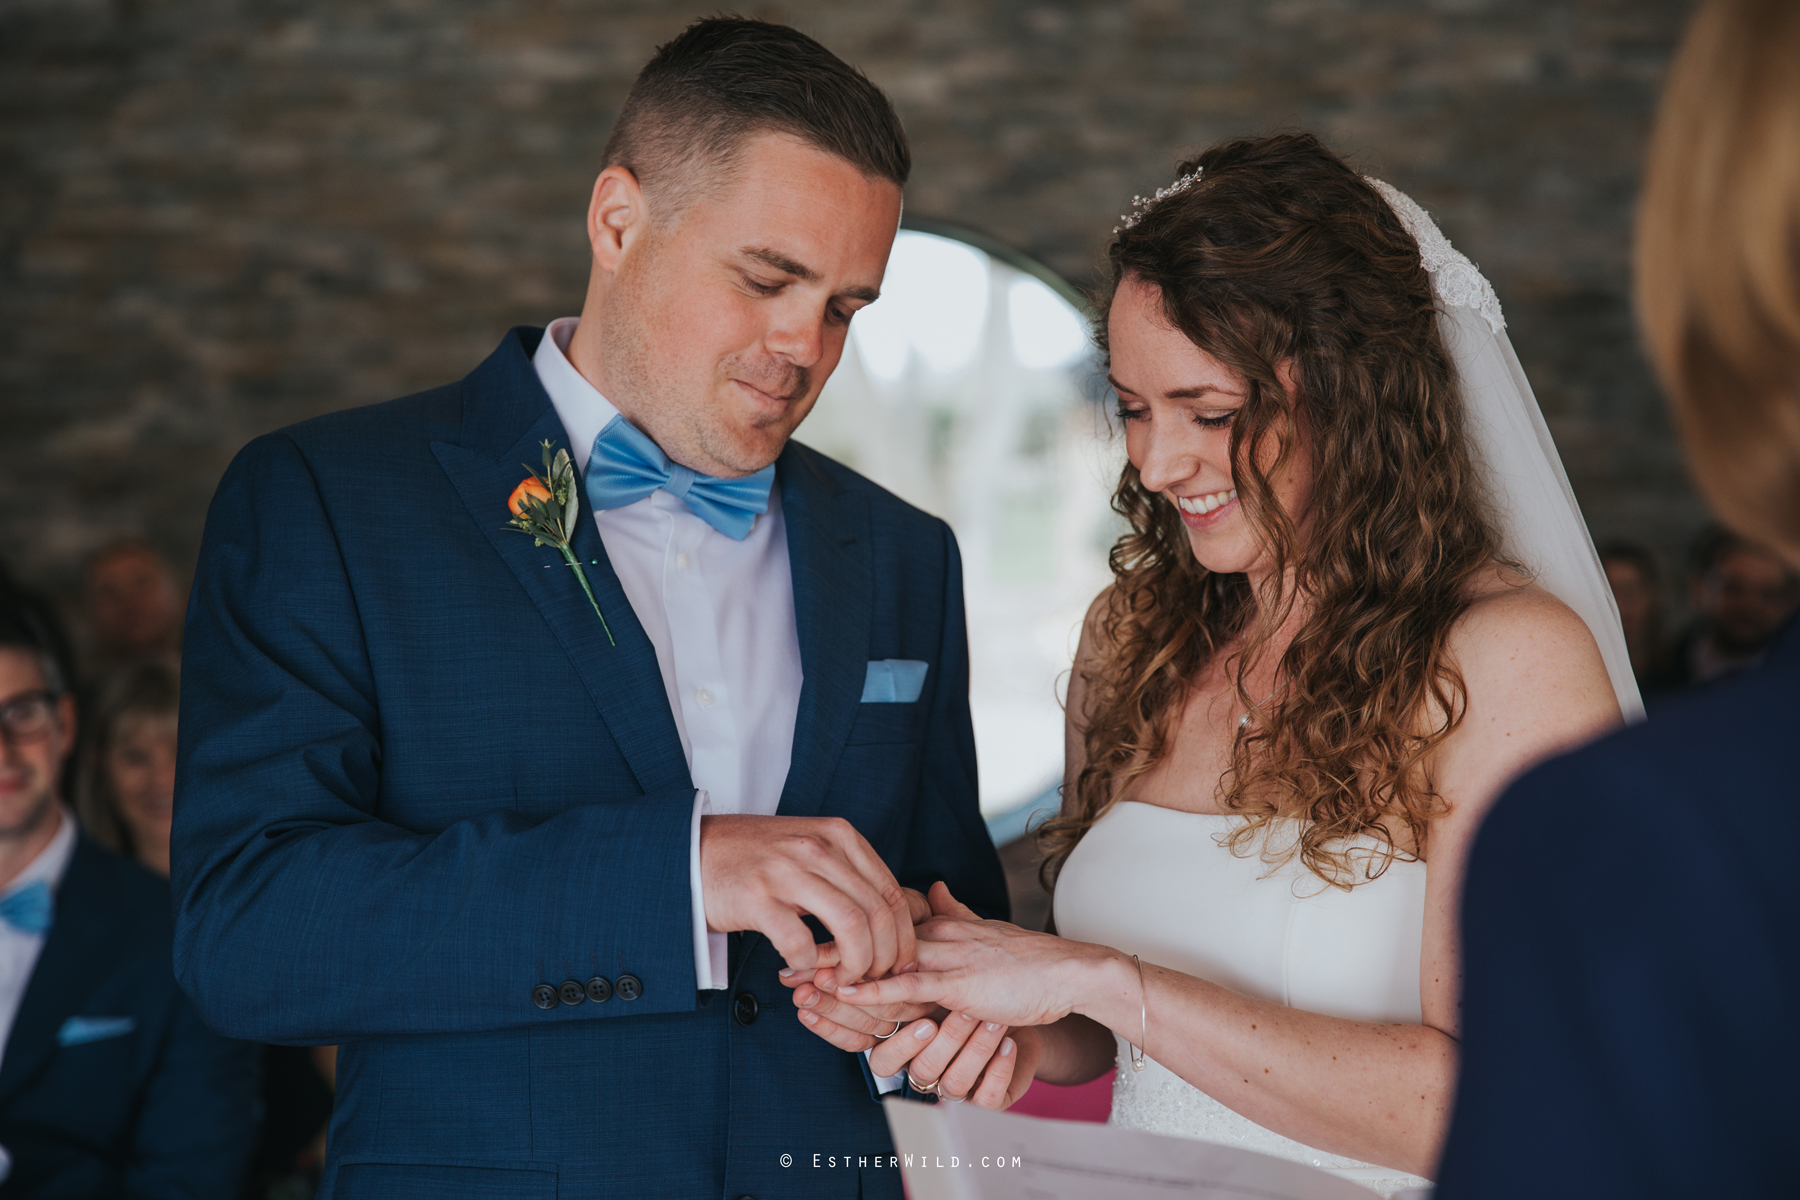 The_BoatHouse_Wedding_Venue_Ormesby_Norfolk_Broads_Boat_Wedding_Photography_Esther_Wild_Photographer_IMG_1130.jpg